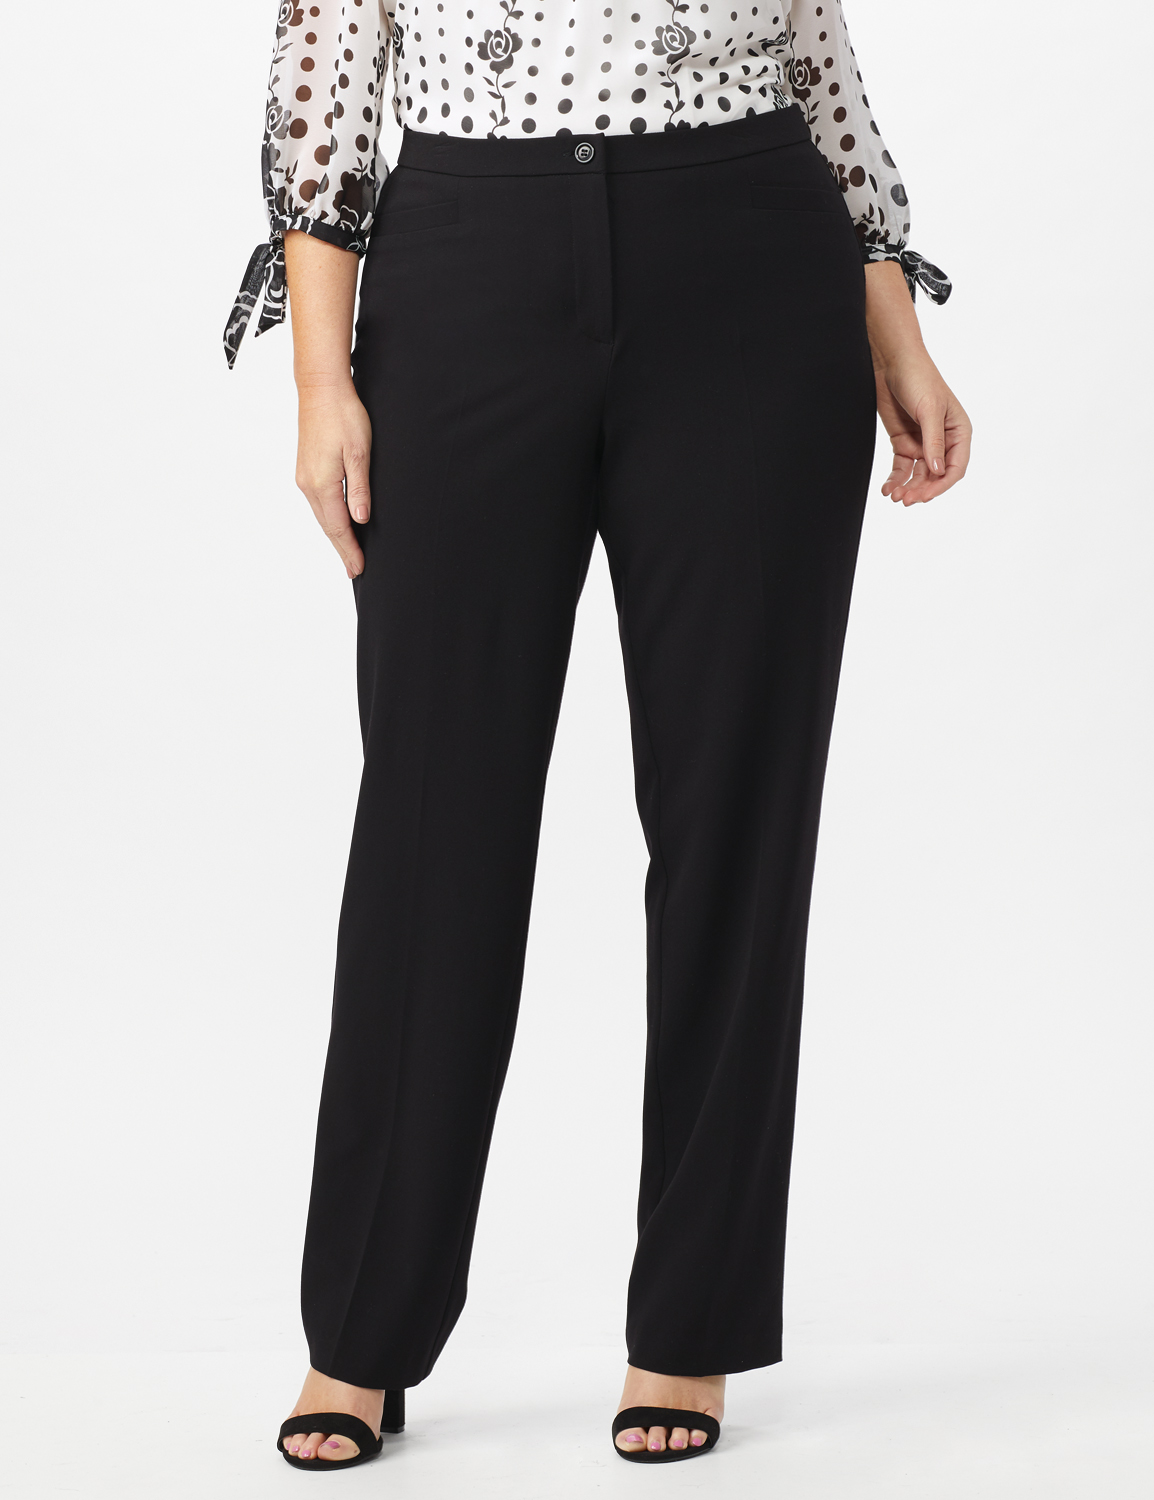 Pre Order Secret Agent Trouser with Cateye Pockets & Zipper- Short Length -Black - Front